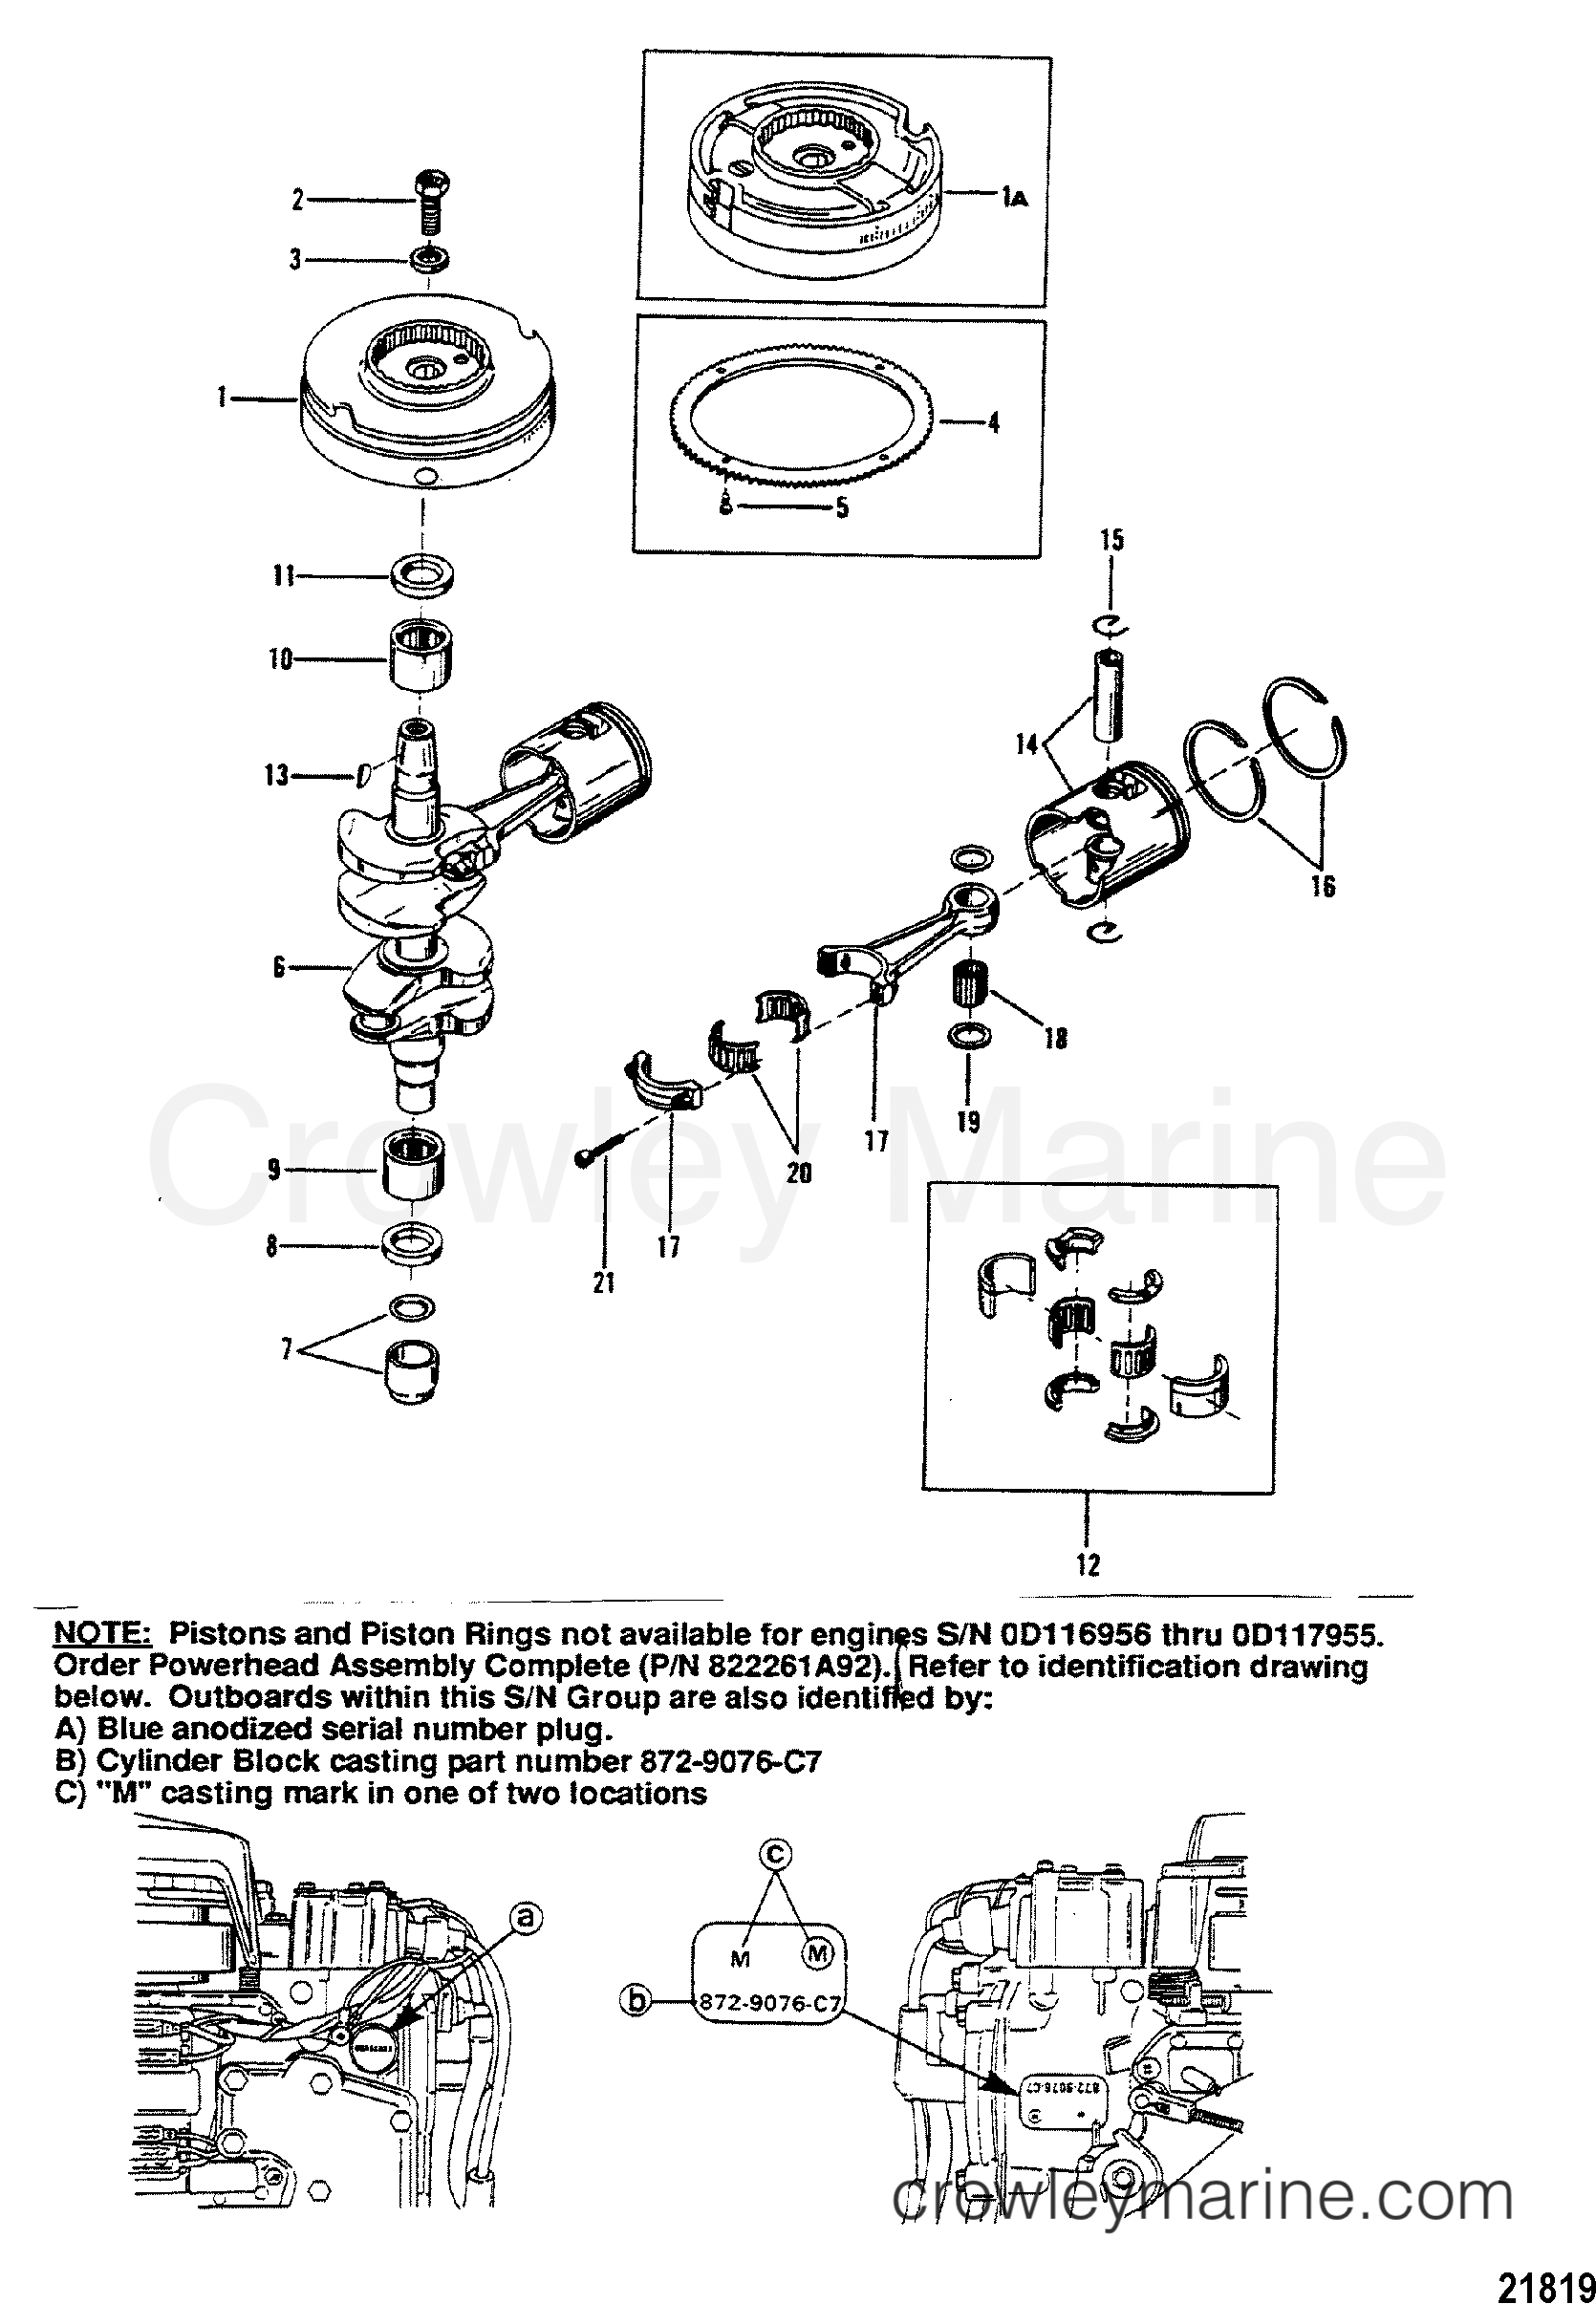 1988 Mercury Outboard 20 [MH] - 1020201BD CRANKSHAFT, PISTONS AND FLYWHEEL section